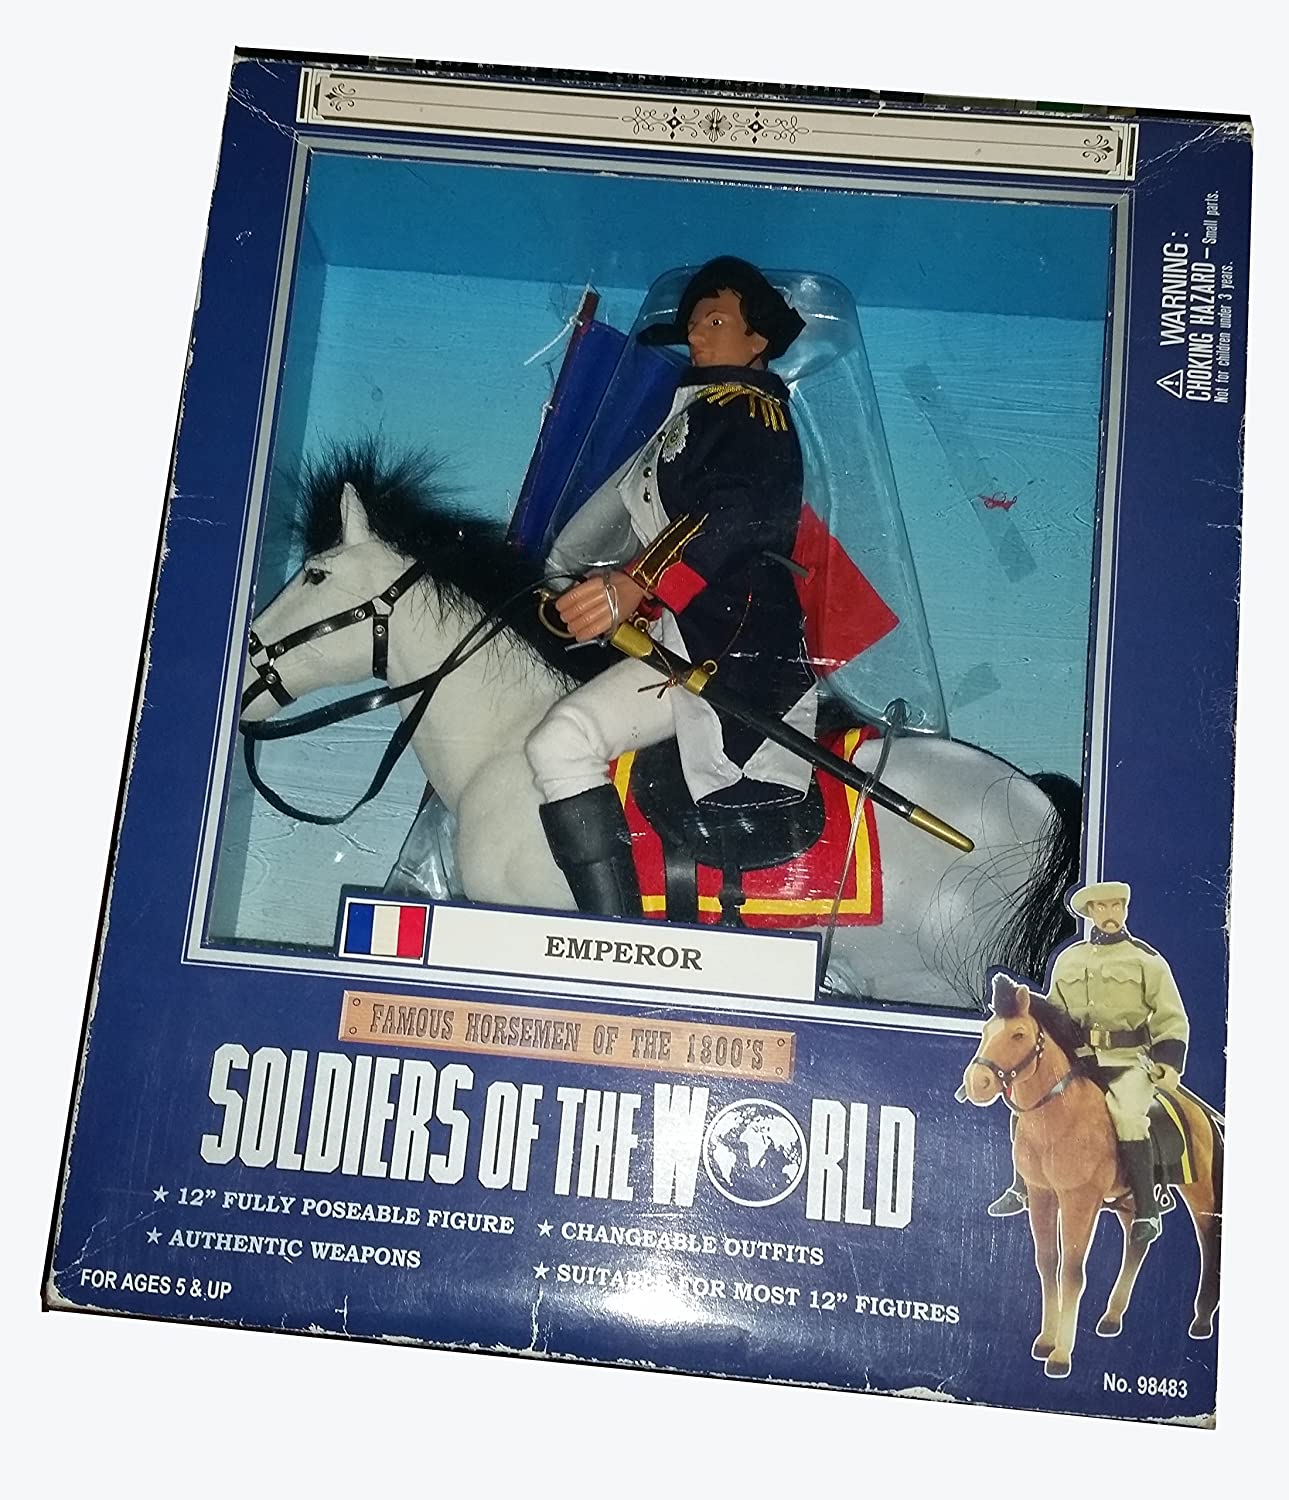 Soldiers of the World, Famous Horsemen of the 1800's, EMPEROR